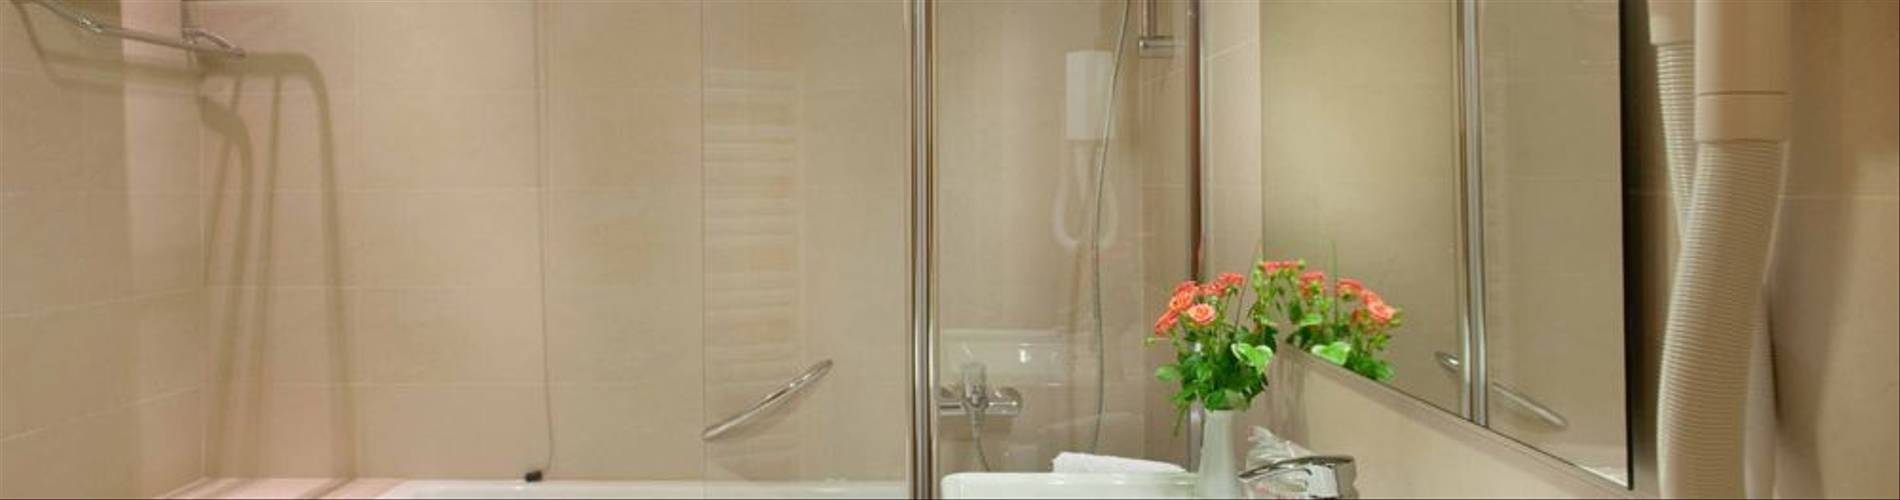 Bathroom-de-luxe-double-room-Hotel-Dubrovnik-Zagreb.jpg